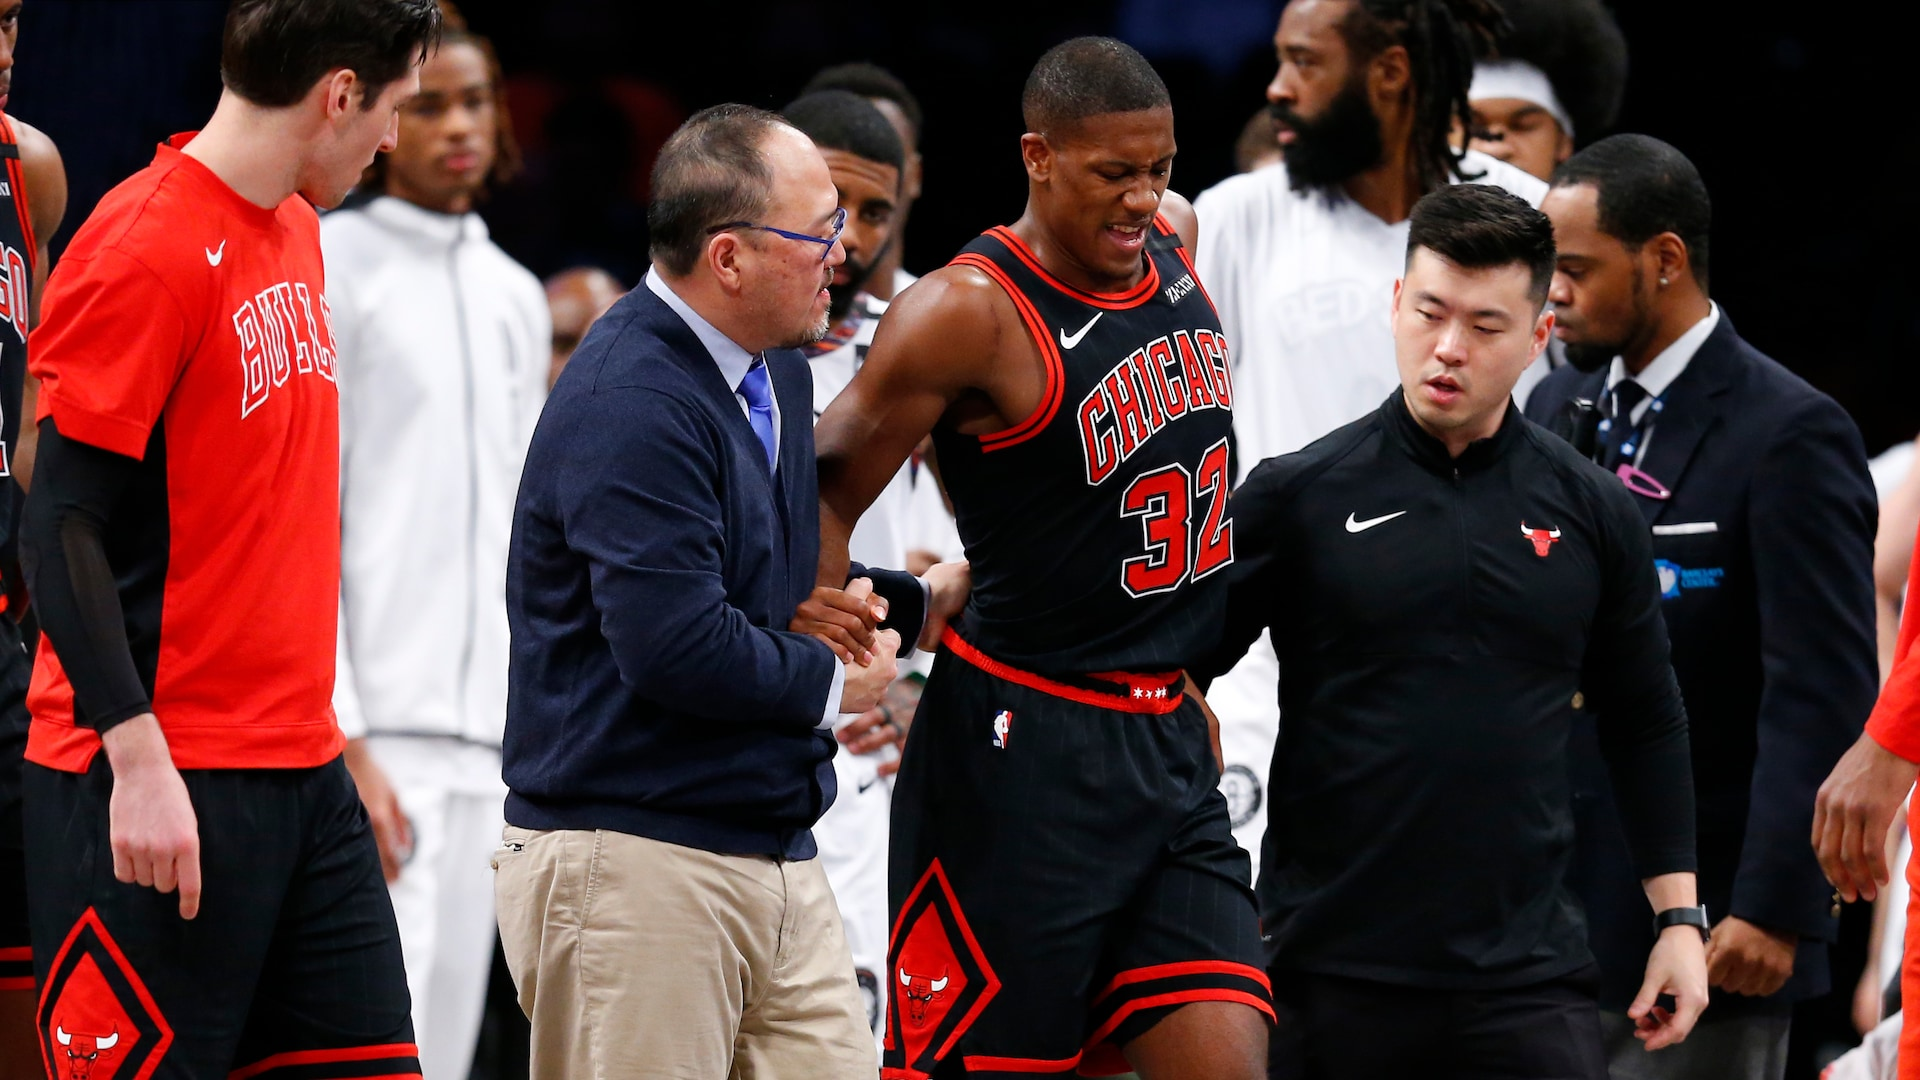 Bulls guard Kris Dunn (knee) out at least 4-6 weeks